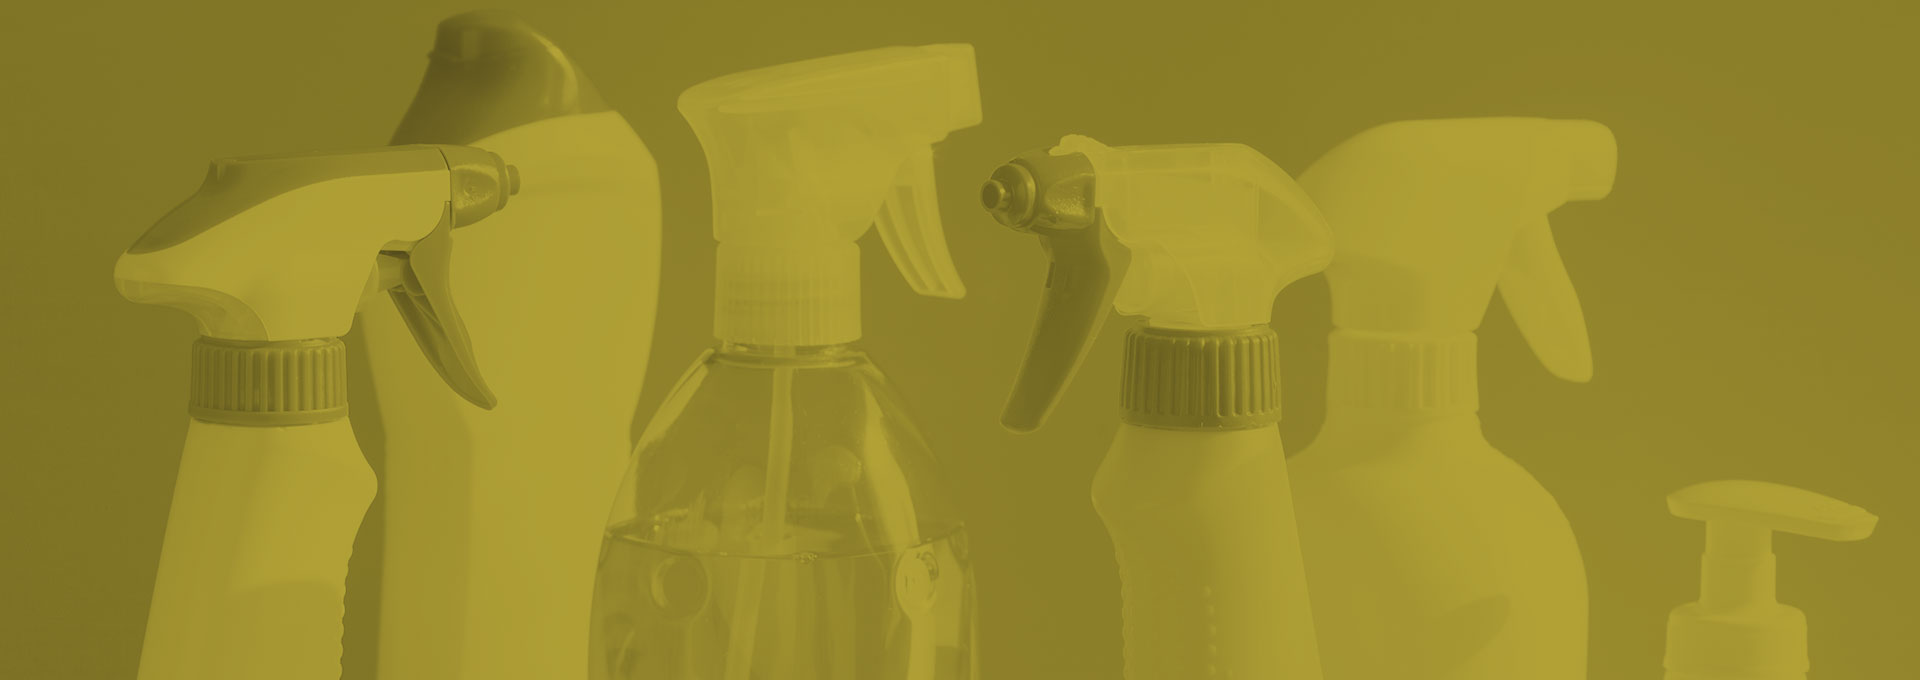 Sustainability Guide for Commercial Cleaning: Finding Eco-Friendly Commercial Cleaning Products